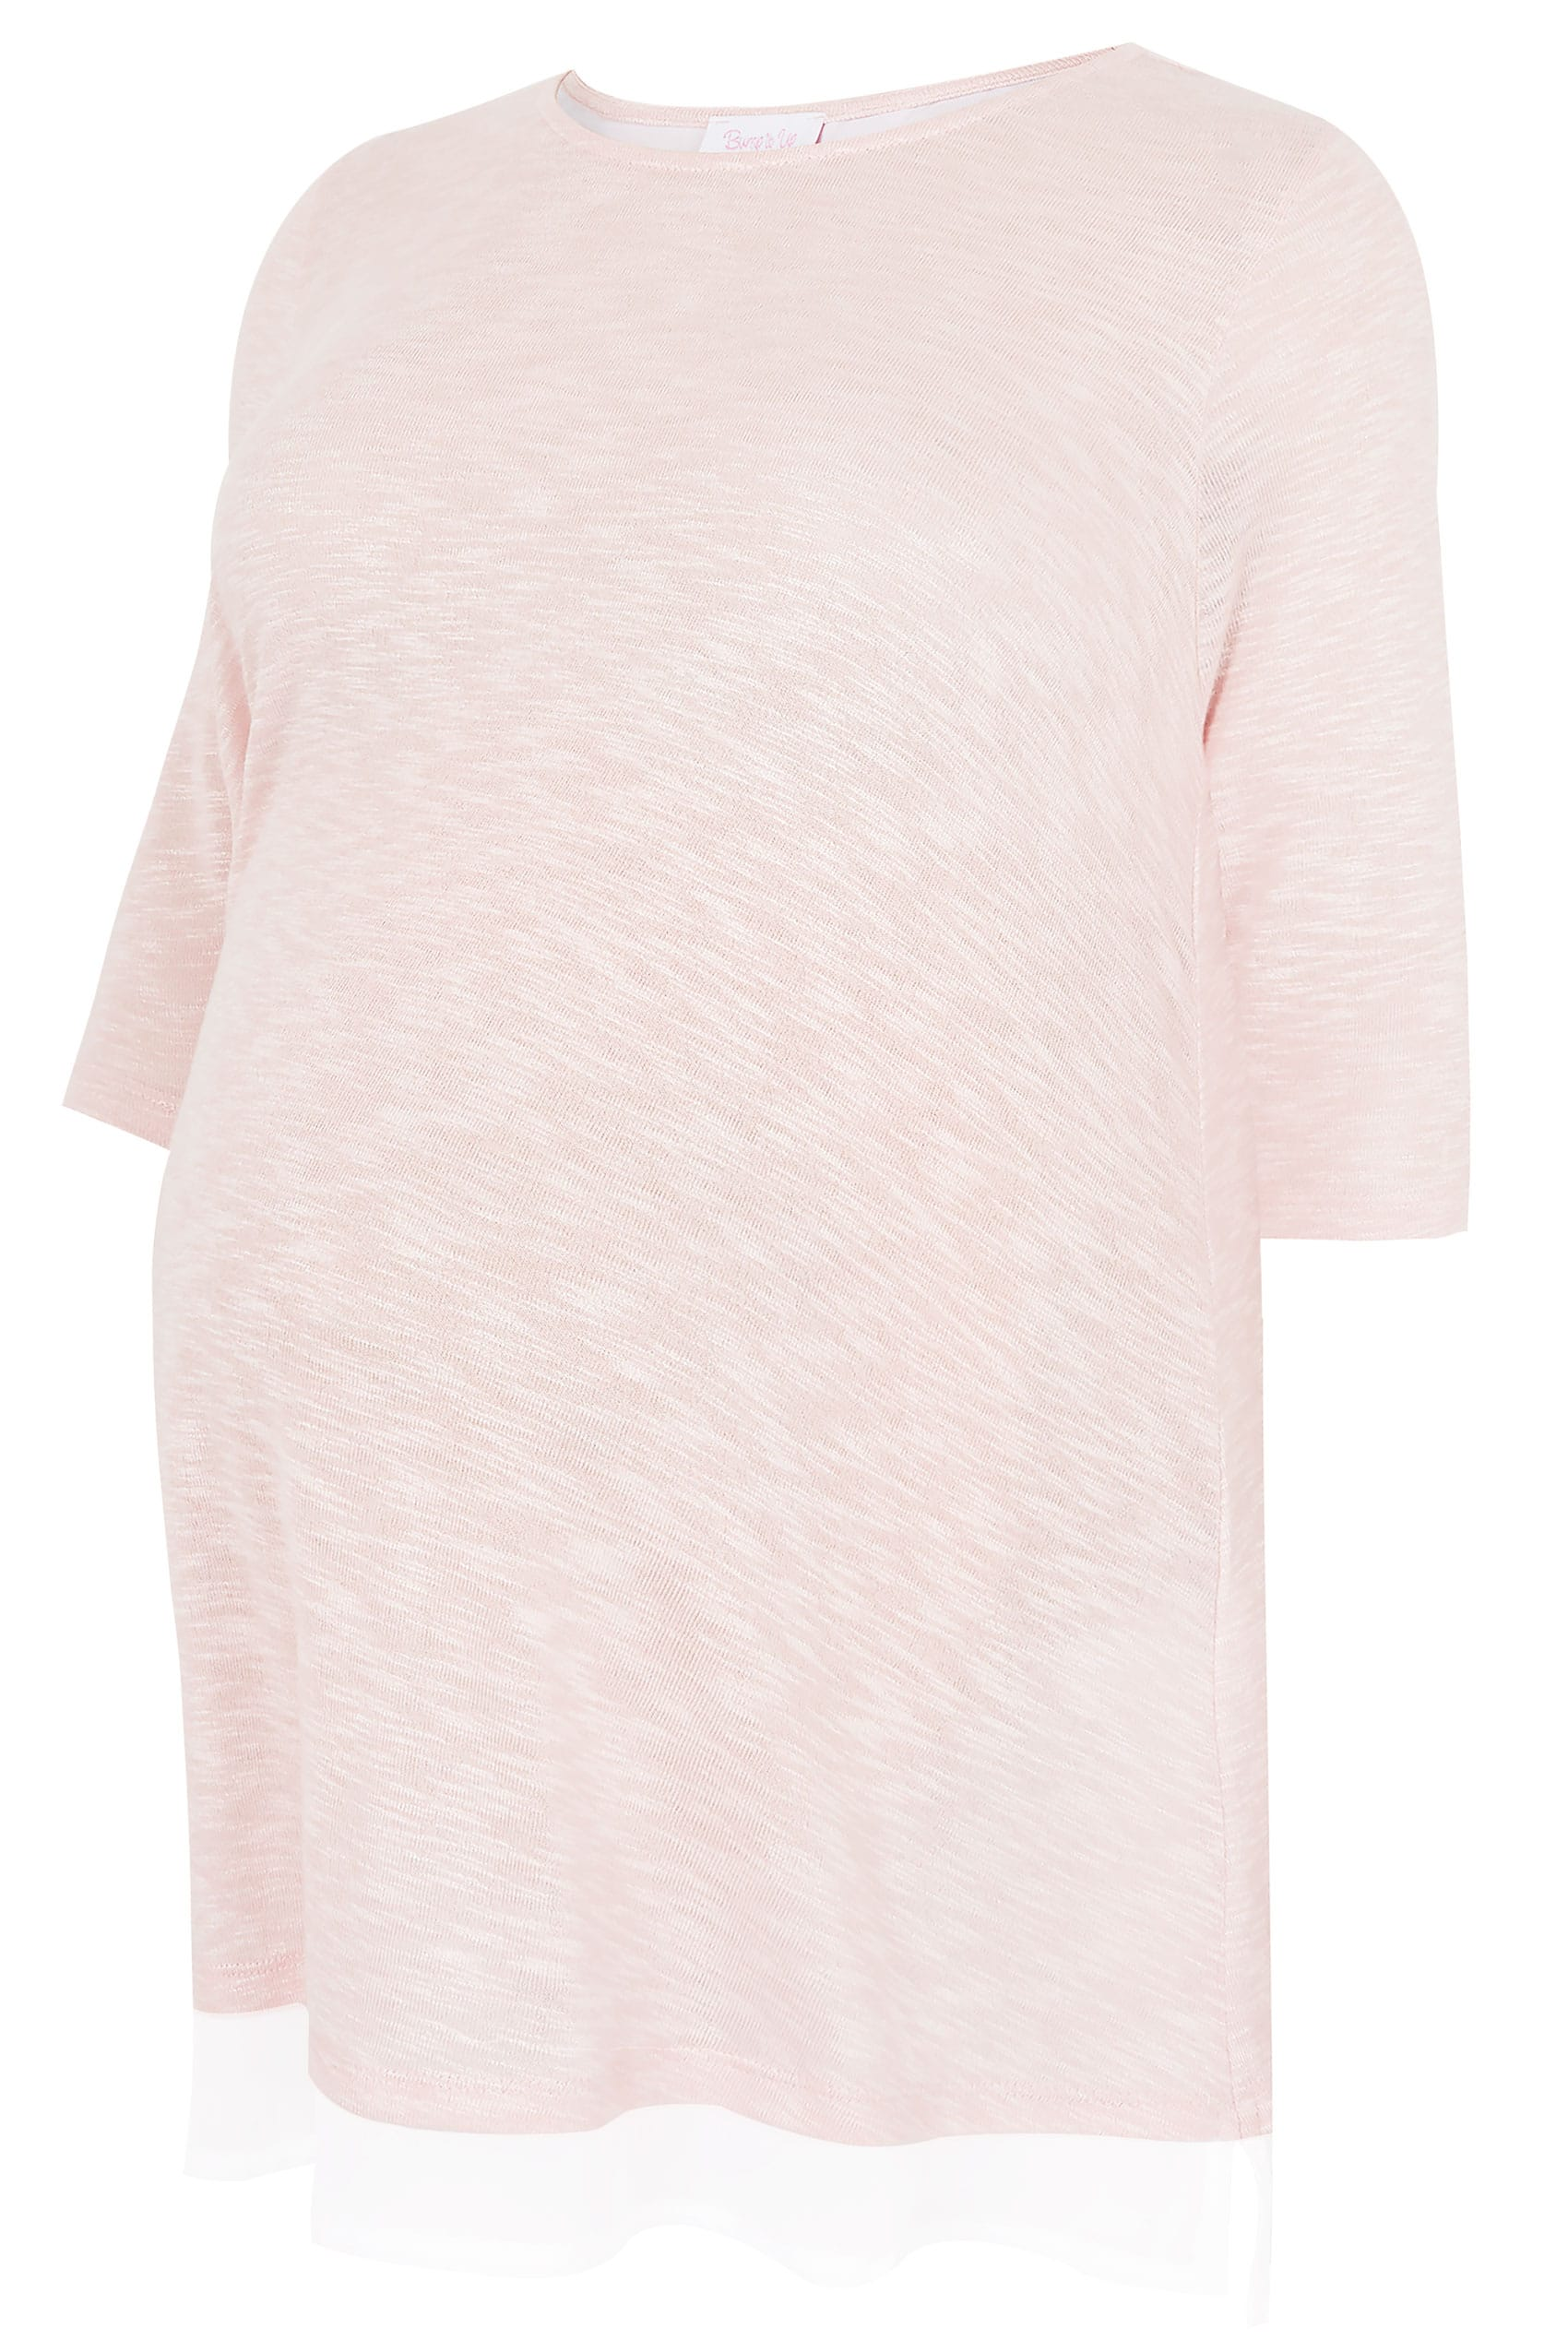 032495061131 BUMP IT UP MATERNITY Pink Fine Knit Top With Chiffon Layer   Split Back